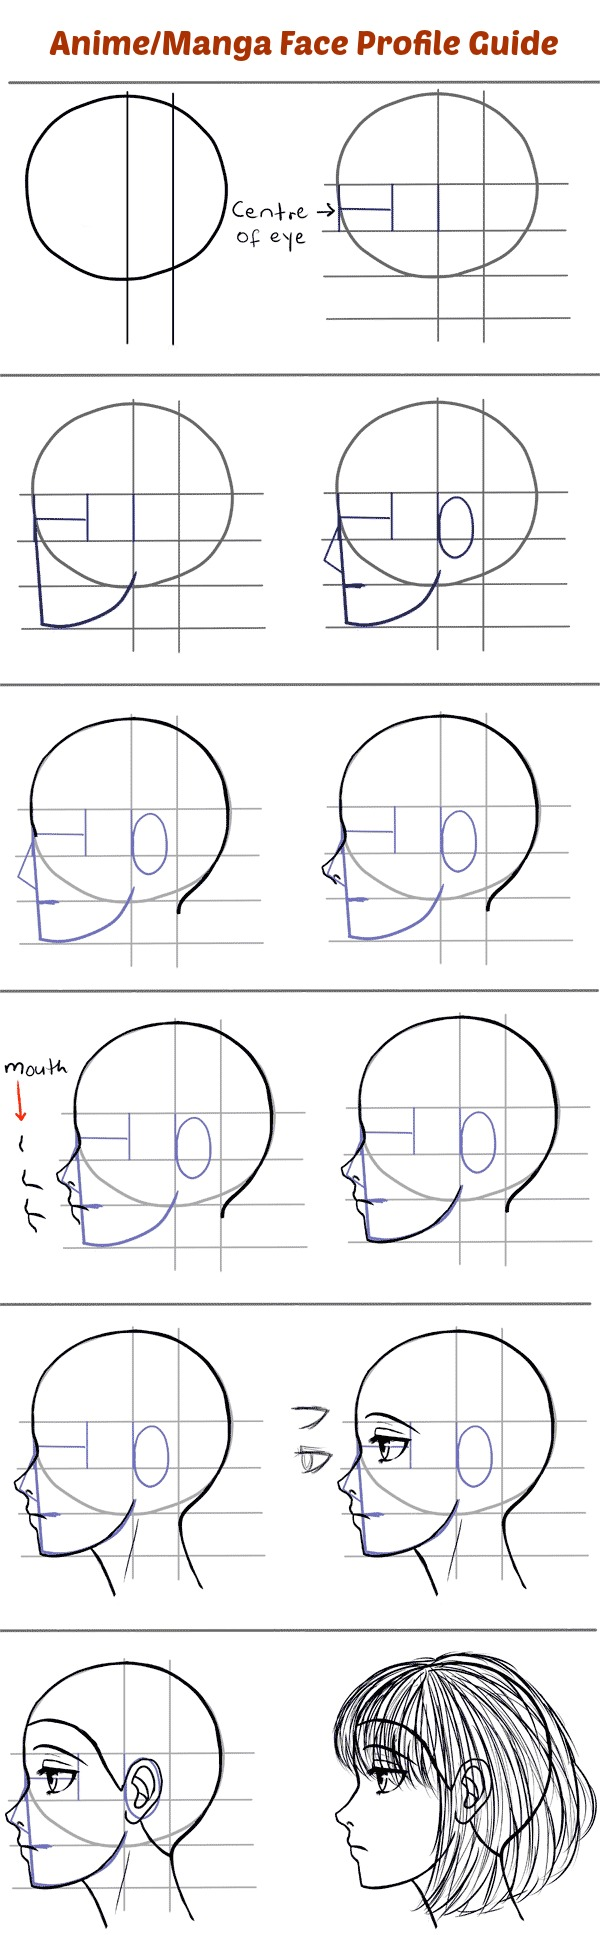 Draw Anime Face Profile By Mangastictuts